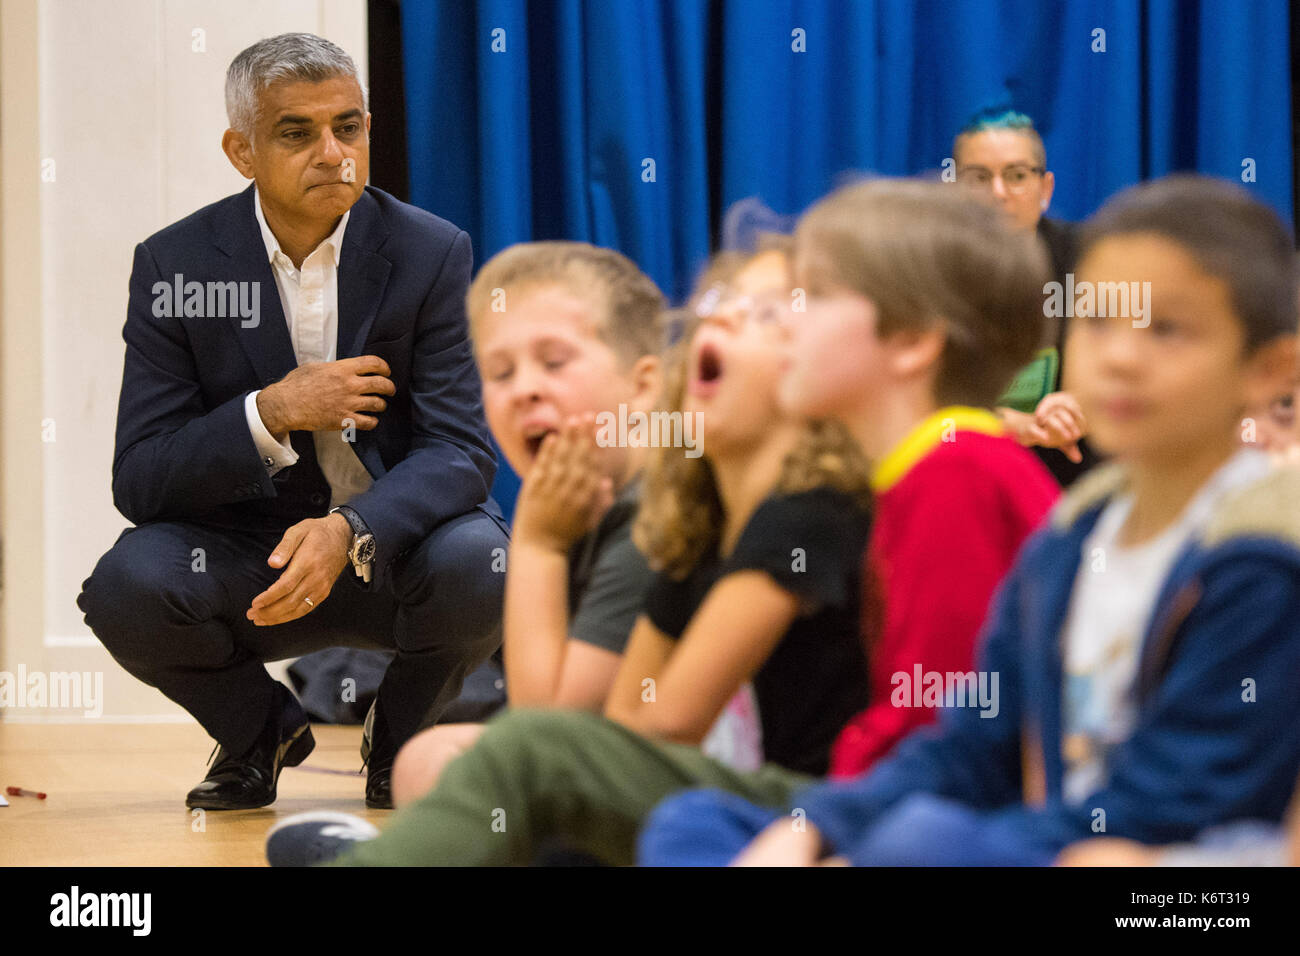 Mayor of London Sadiq Khan listens to a presentation as he launches the first of 50 'air quality audits' at Prior Weston Primary School in central London, which is located close to a busy road which has pollution levels that are twice the legal limit. - Stock Image